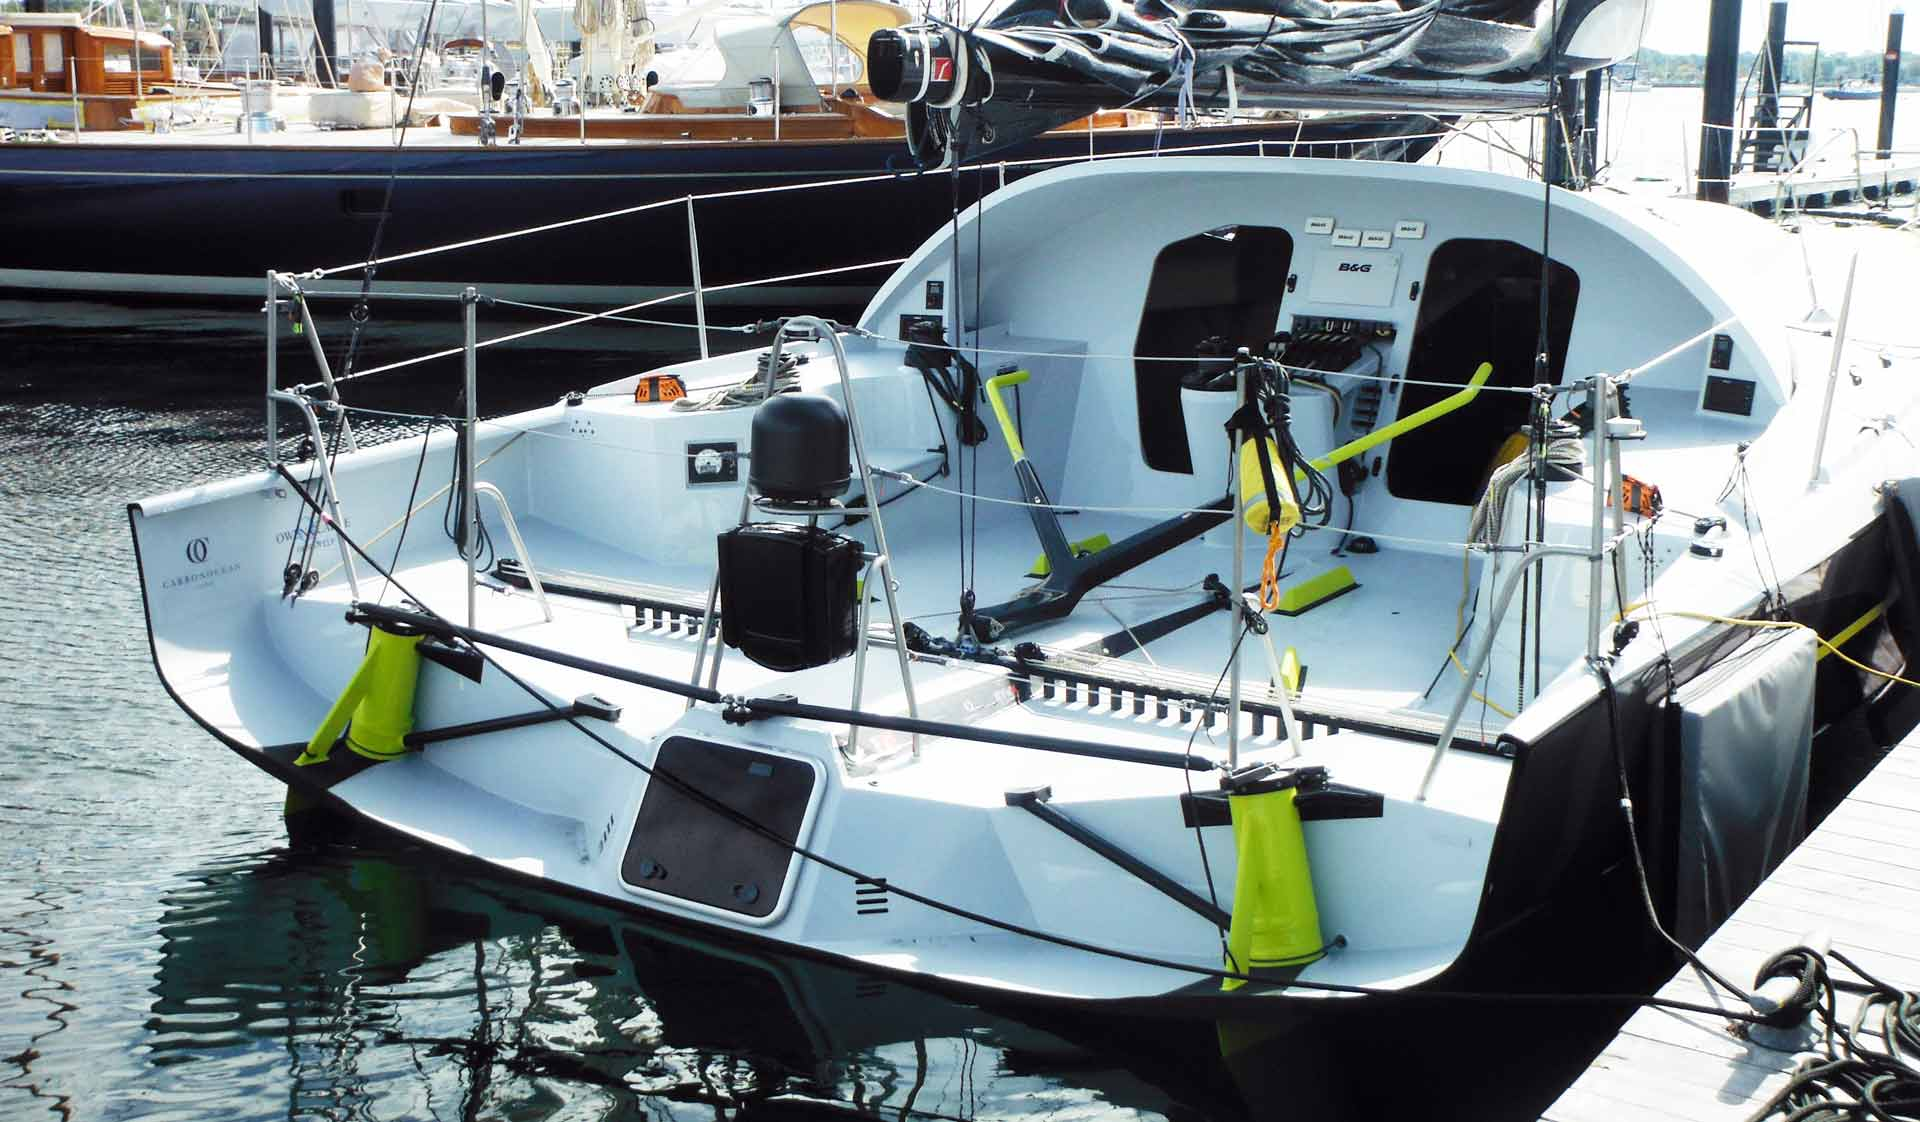 LONGBOWs stern - notice the thick rudder shafts